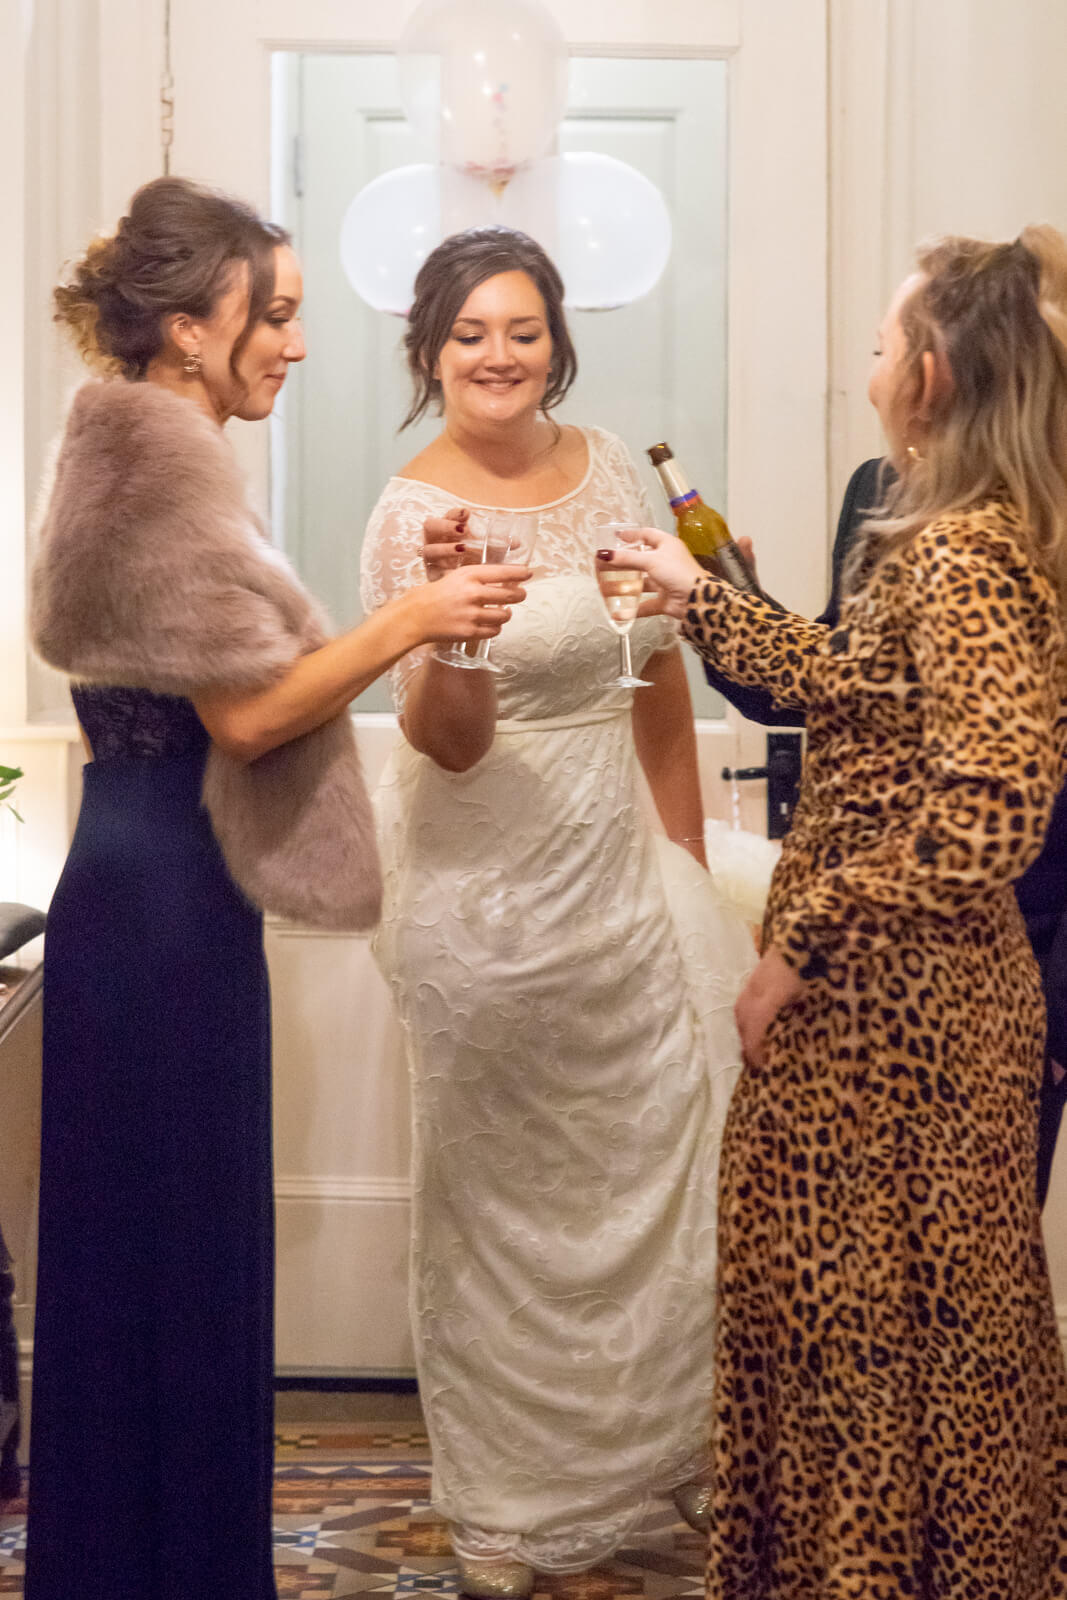 Bride and her friends clink glasses and toast whilst standing in a tiled hallway